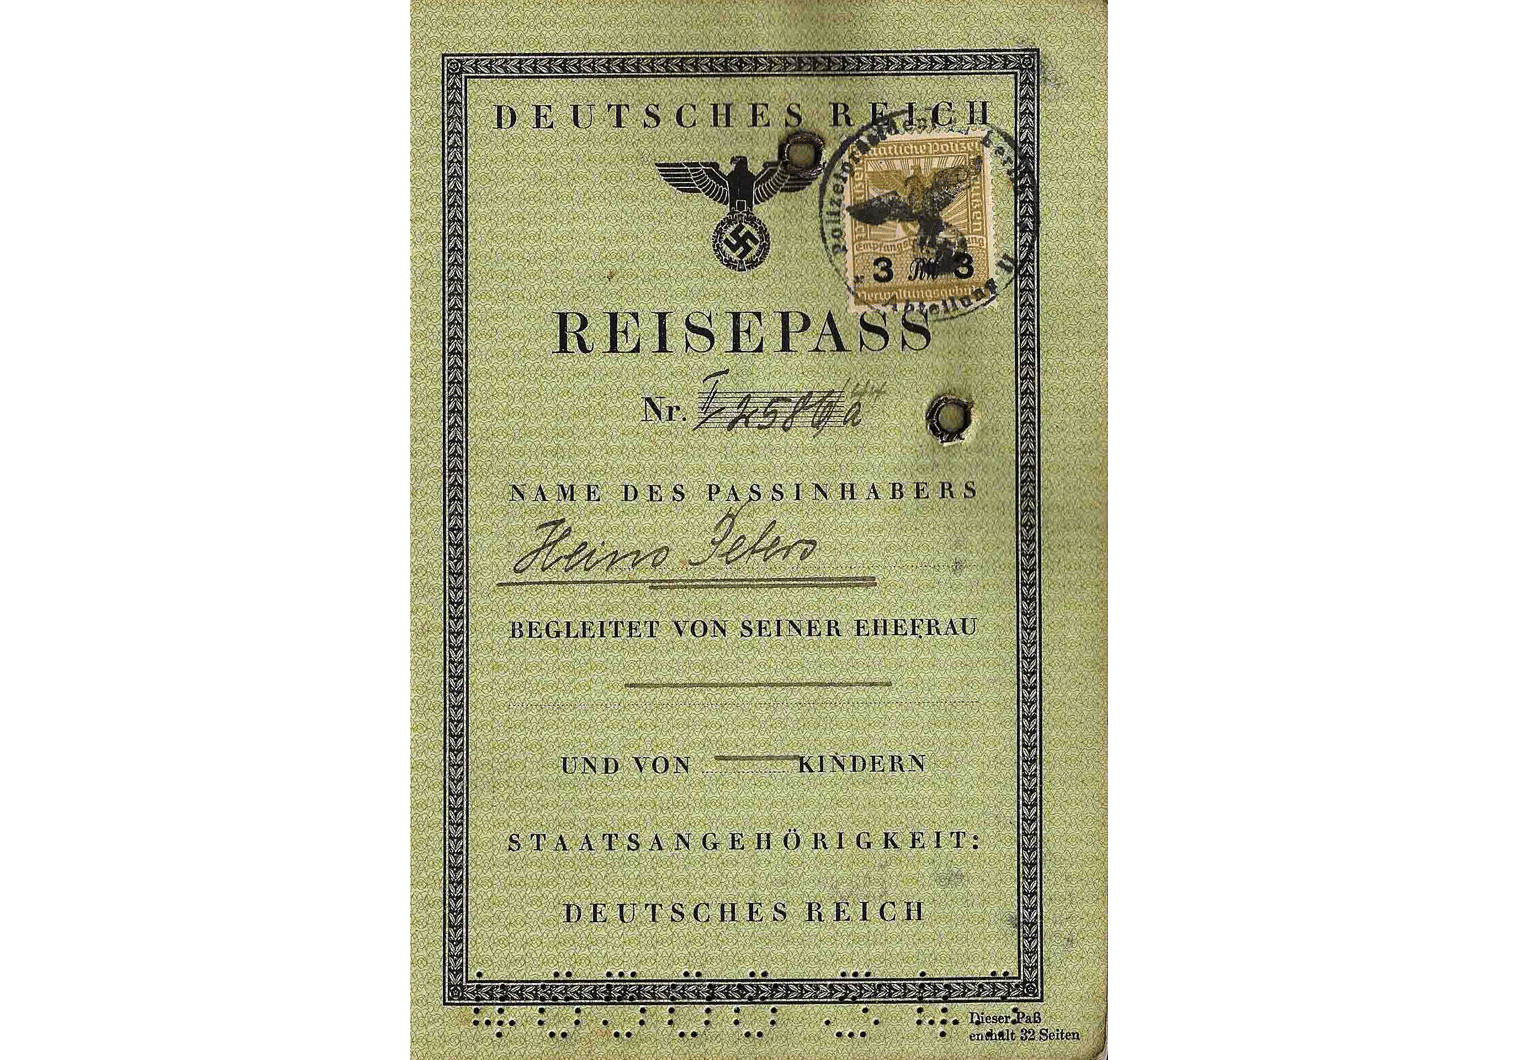 WW2 German passport